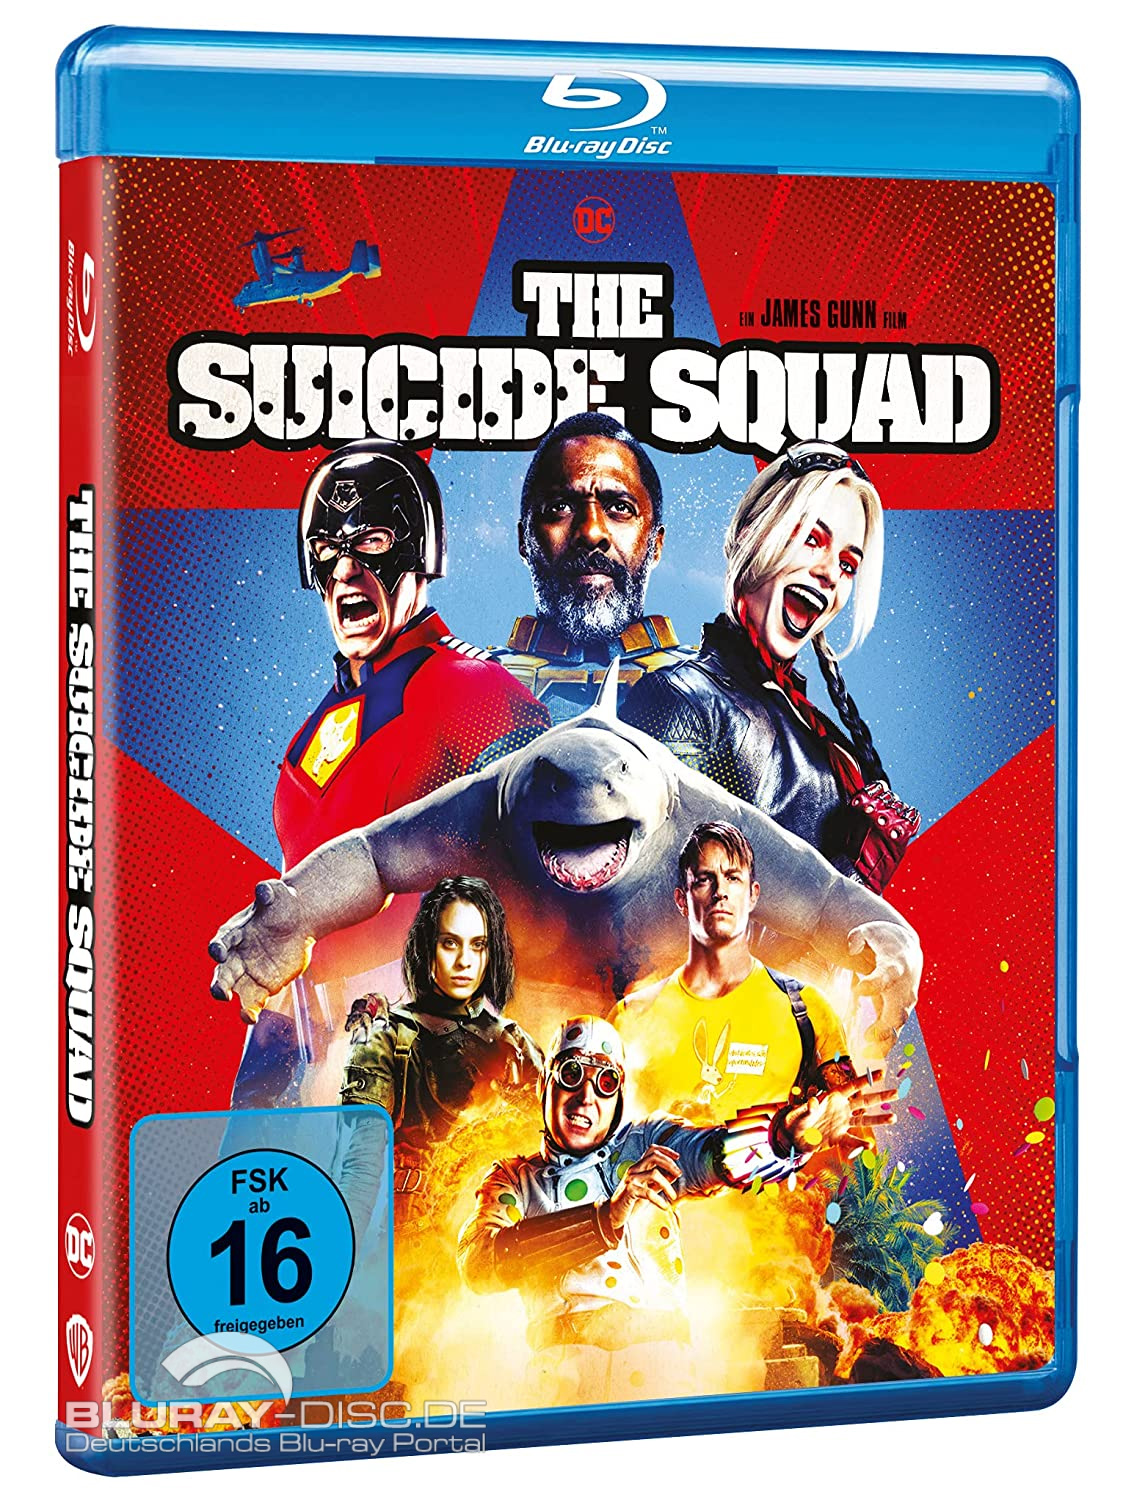 The_Suicide_Squad_Galerie_HD_Amaray_02.jpg